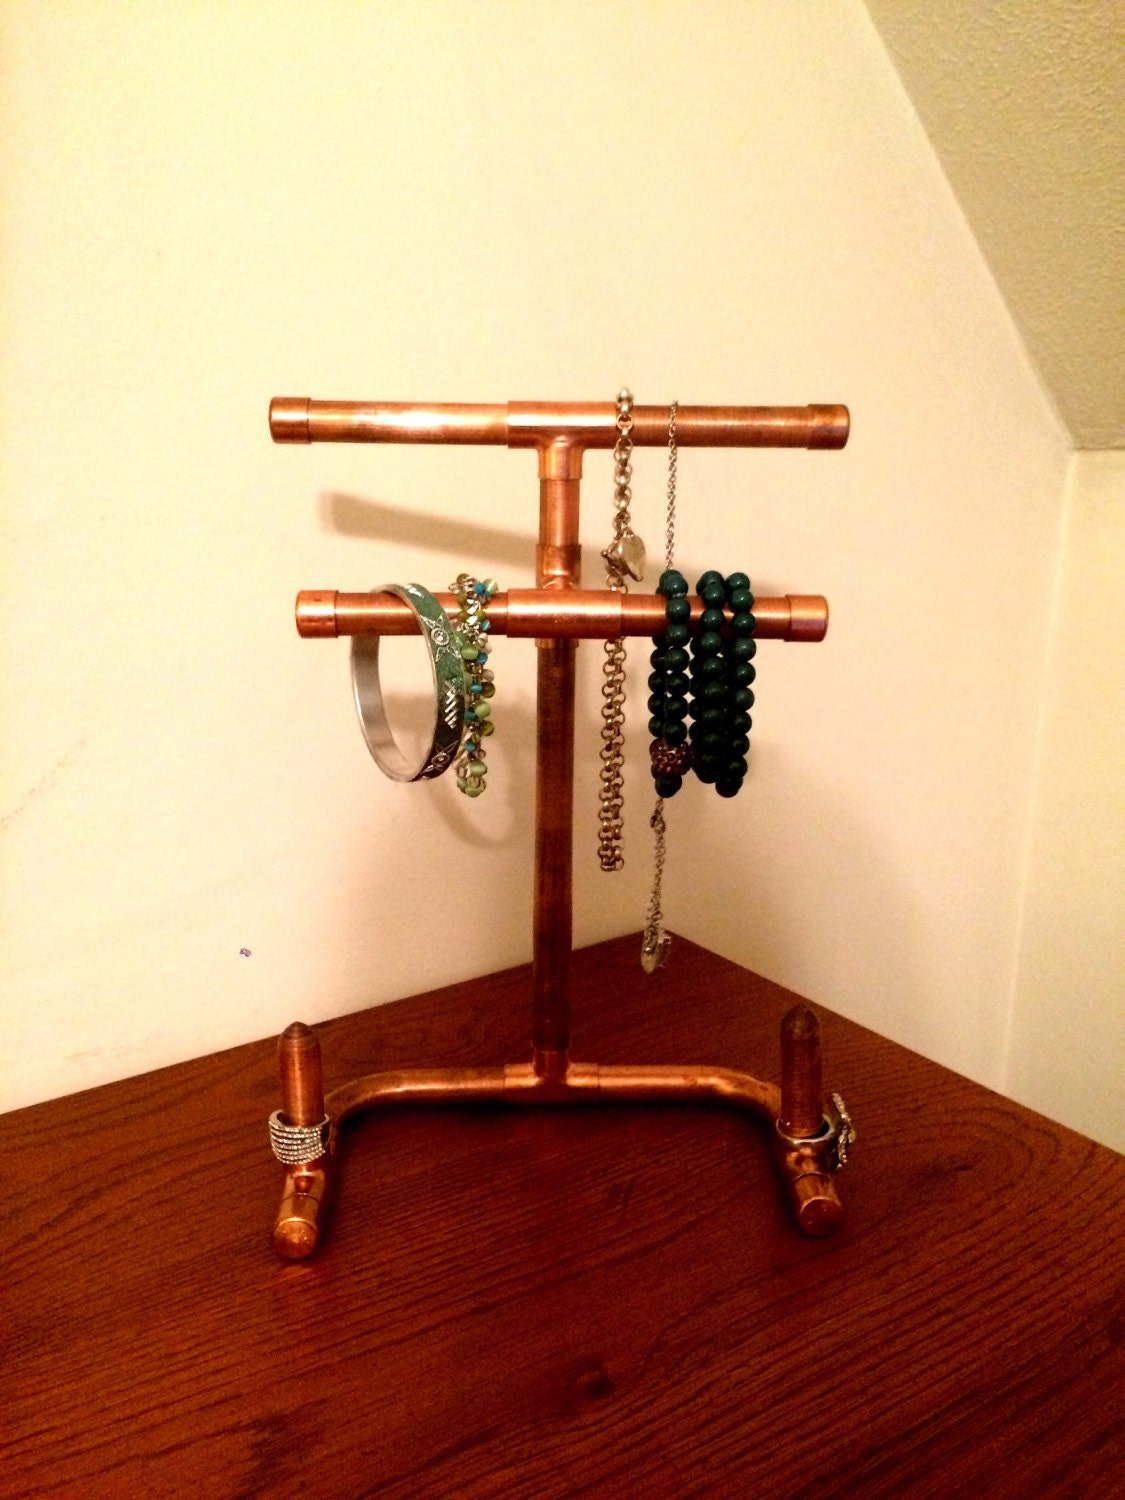 Steampunk copper pipe jewelry stand or jewelry display for Copper pipe jewelry stand